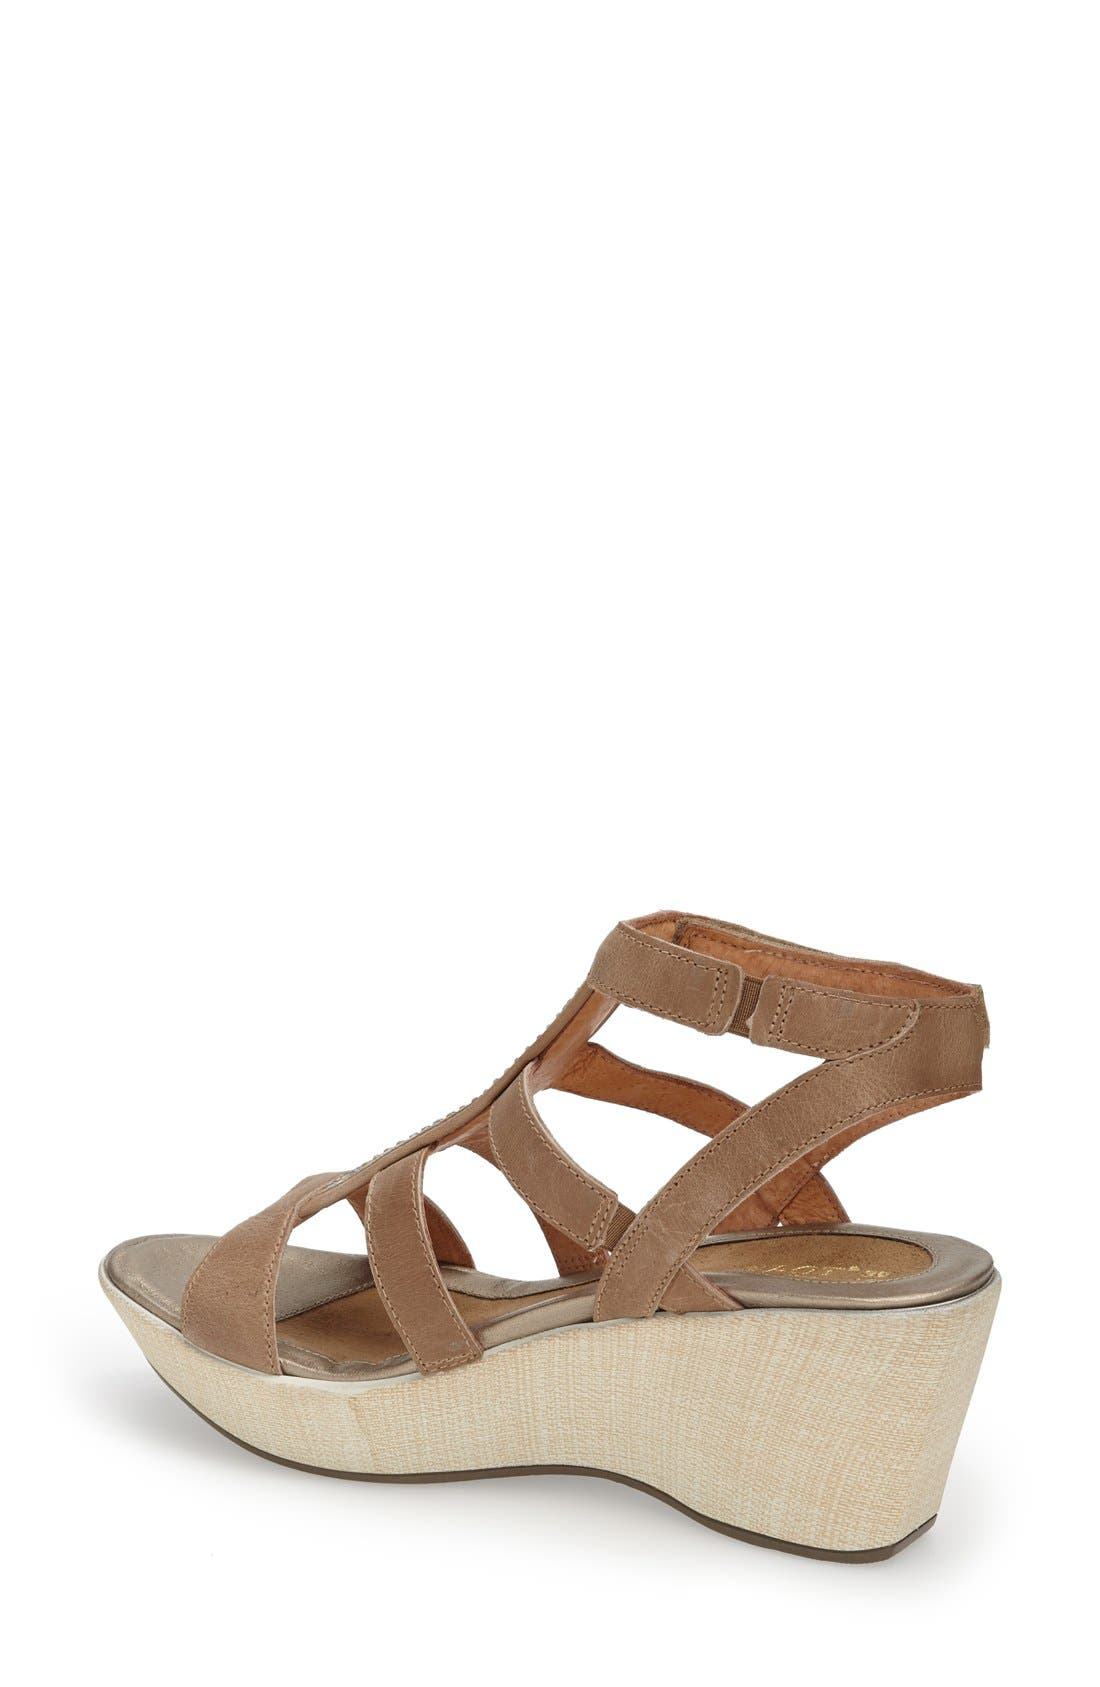 'Mystery' Platform Wedge Sandal,                             Alternate thumbnail 4, color,